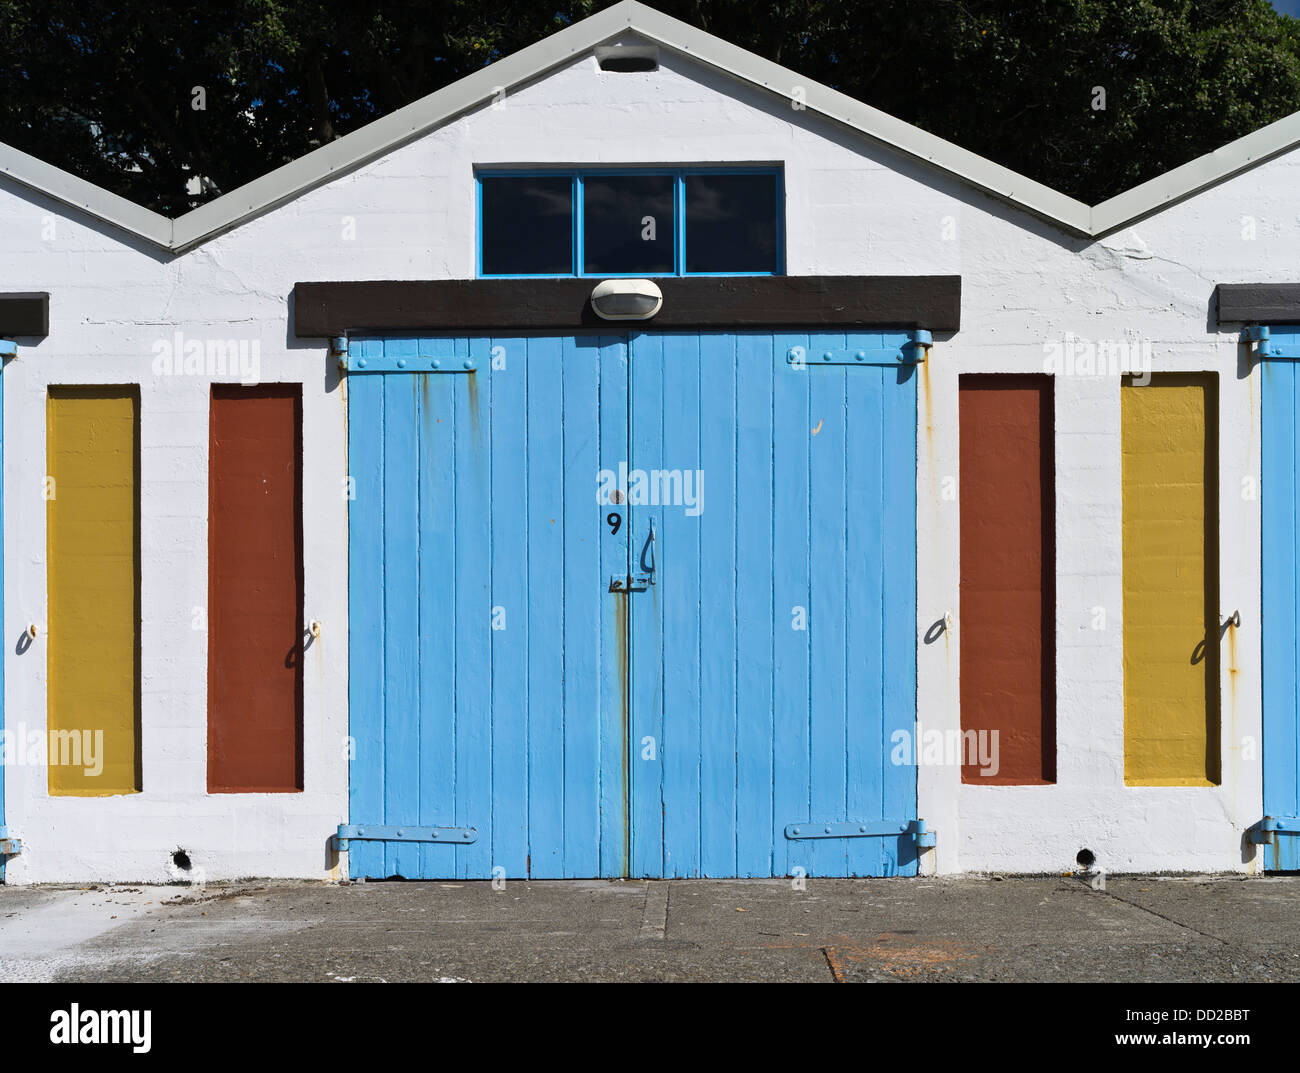 dh Lambton Harbour WELLINGTON NEW ZEALAND Colourful boatshed doors Clyde Quay Marina boat shed & dh Lambton Harbour WELLINGTON NEW ZEALAND Colourful boatshed doors ...